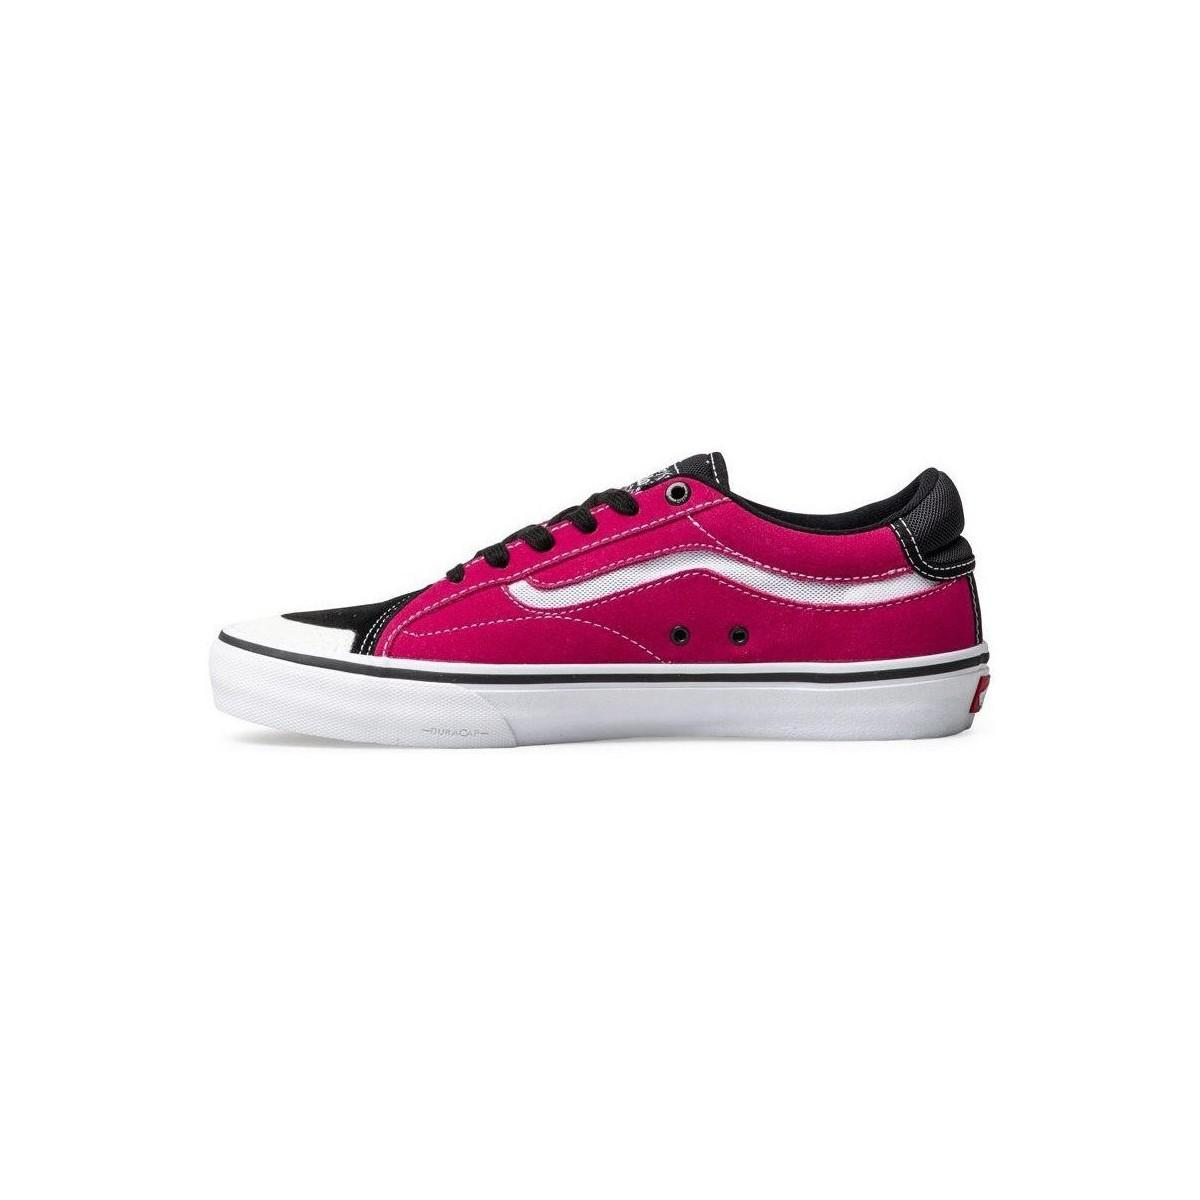 e30d0f42def Vans Tnt Advanced Prototype Men s Shoes (trainers) In Pink in Pink ...